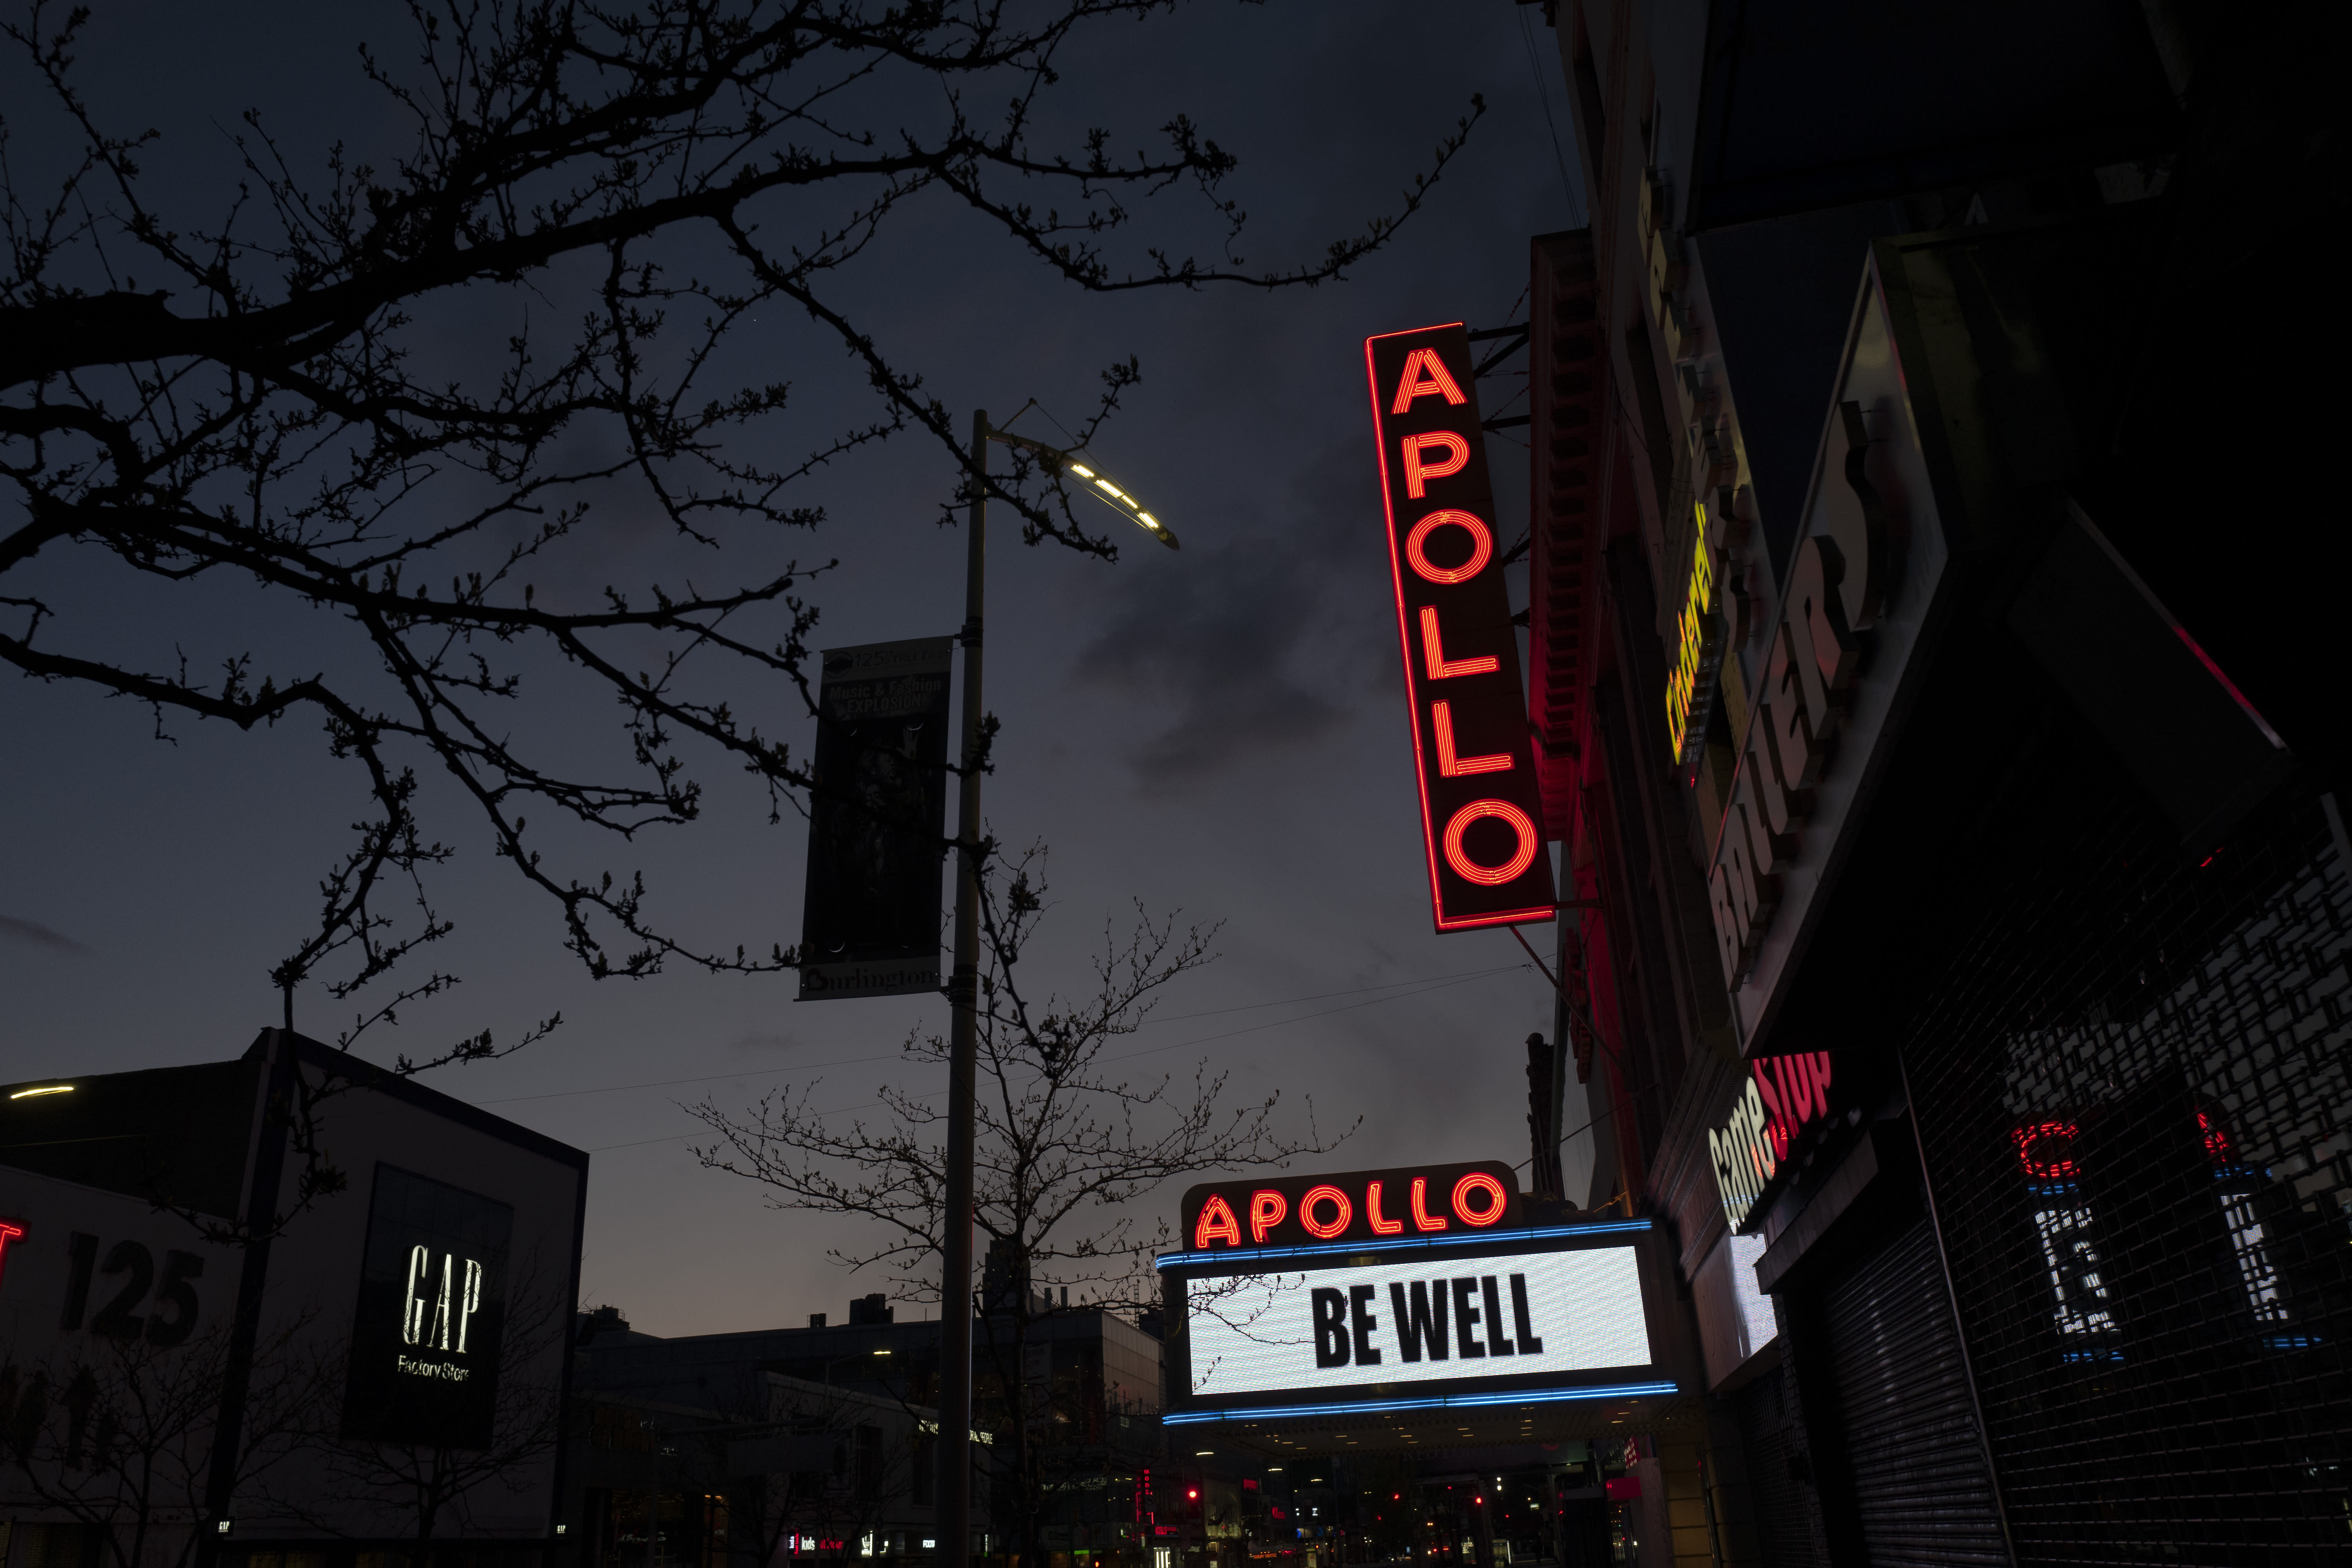 """The Apollo Theater is closed due to the coronavirus pandemic but carries the message """"Be Well,"""" Thursday, April 16, 2020, in the Harlem neighborhood of New York. Most entertainment venues nationwide are closed during the COVID-19 coronavirus pandemic. (AP Photo/Mark Lennihan)"""